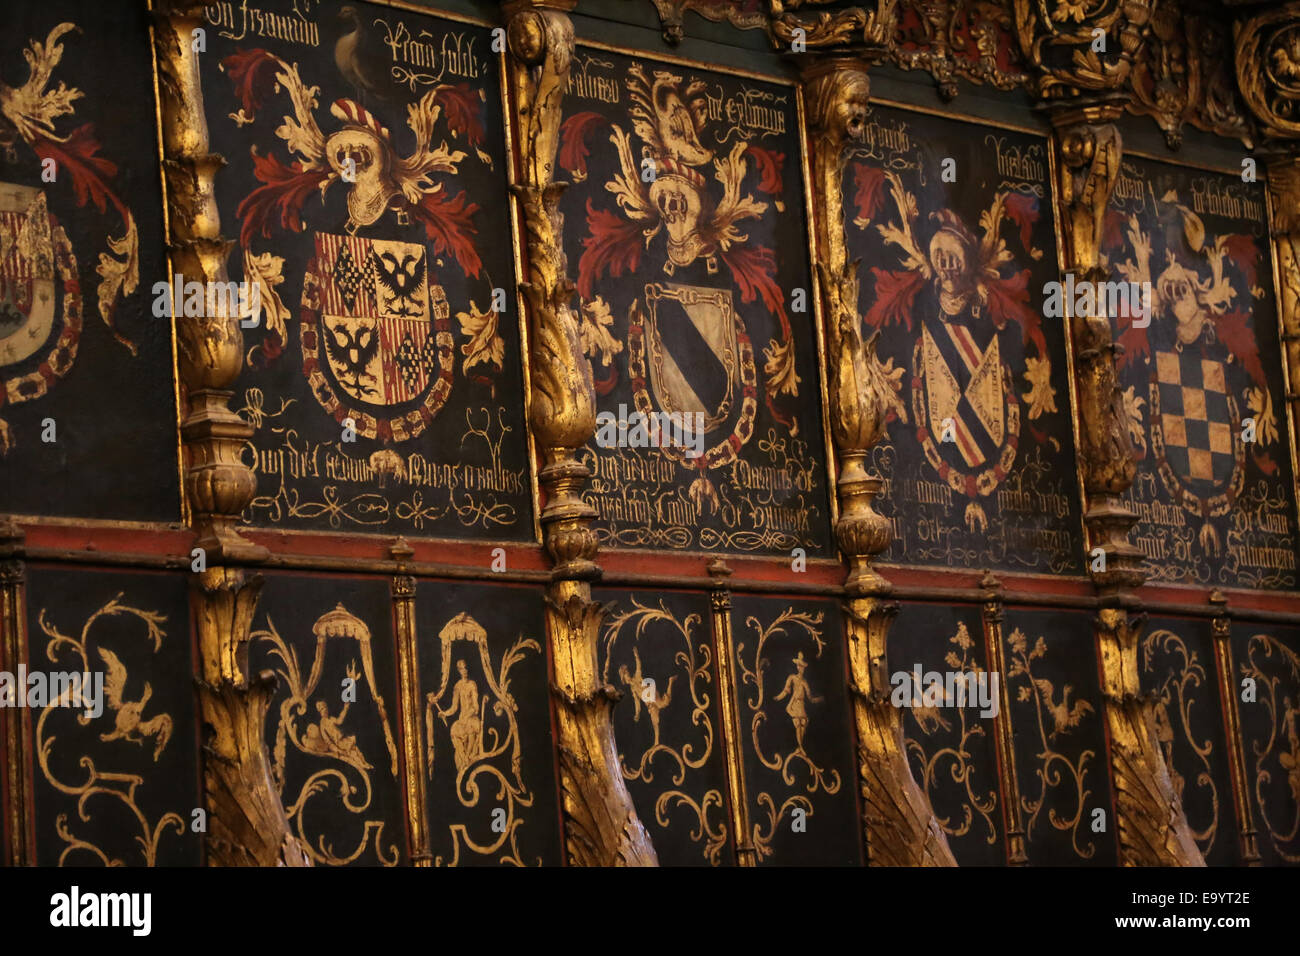 Spain. Barcelona. Cathedral of the Holy Cross and Saint Eulalia. The choir stalls. Detail of coats-of-arms. 16th - Stock Image